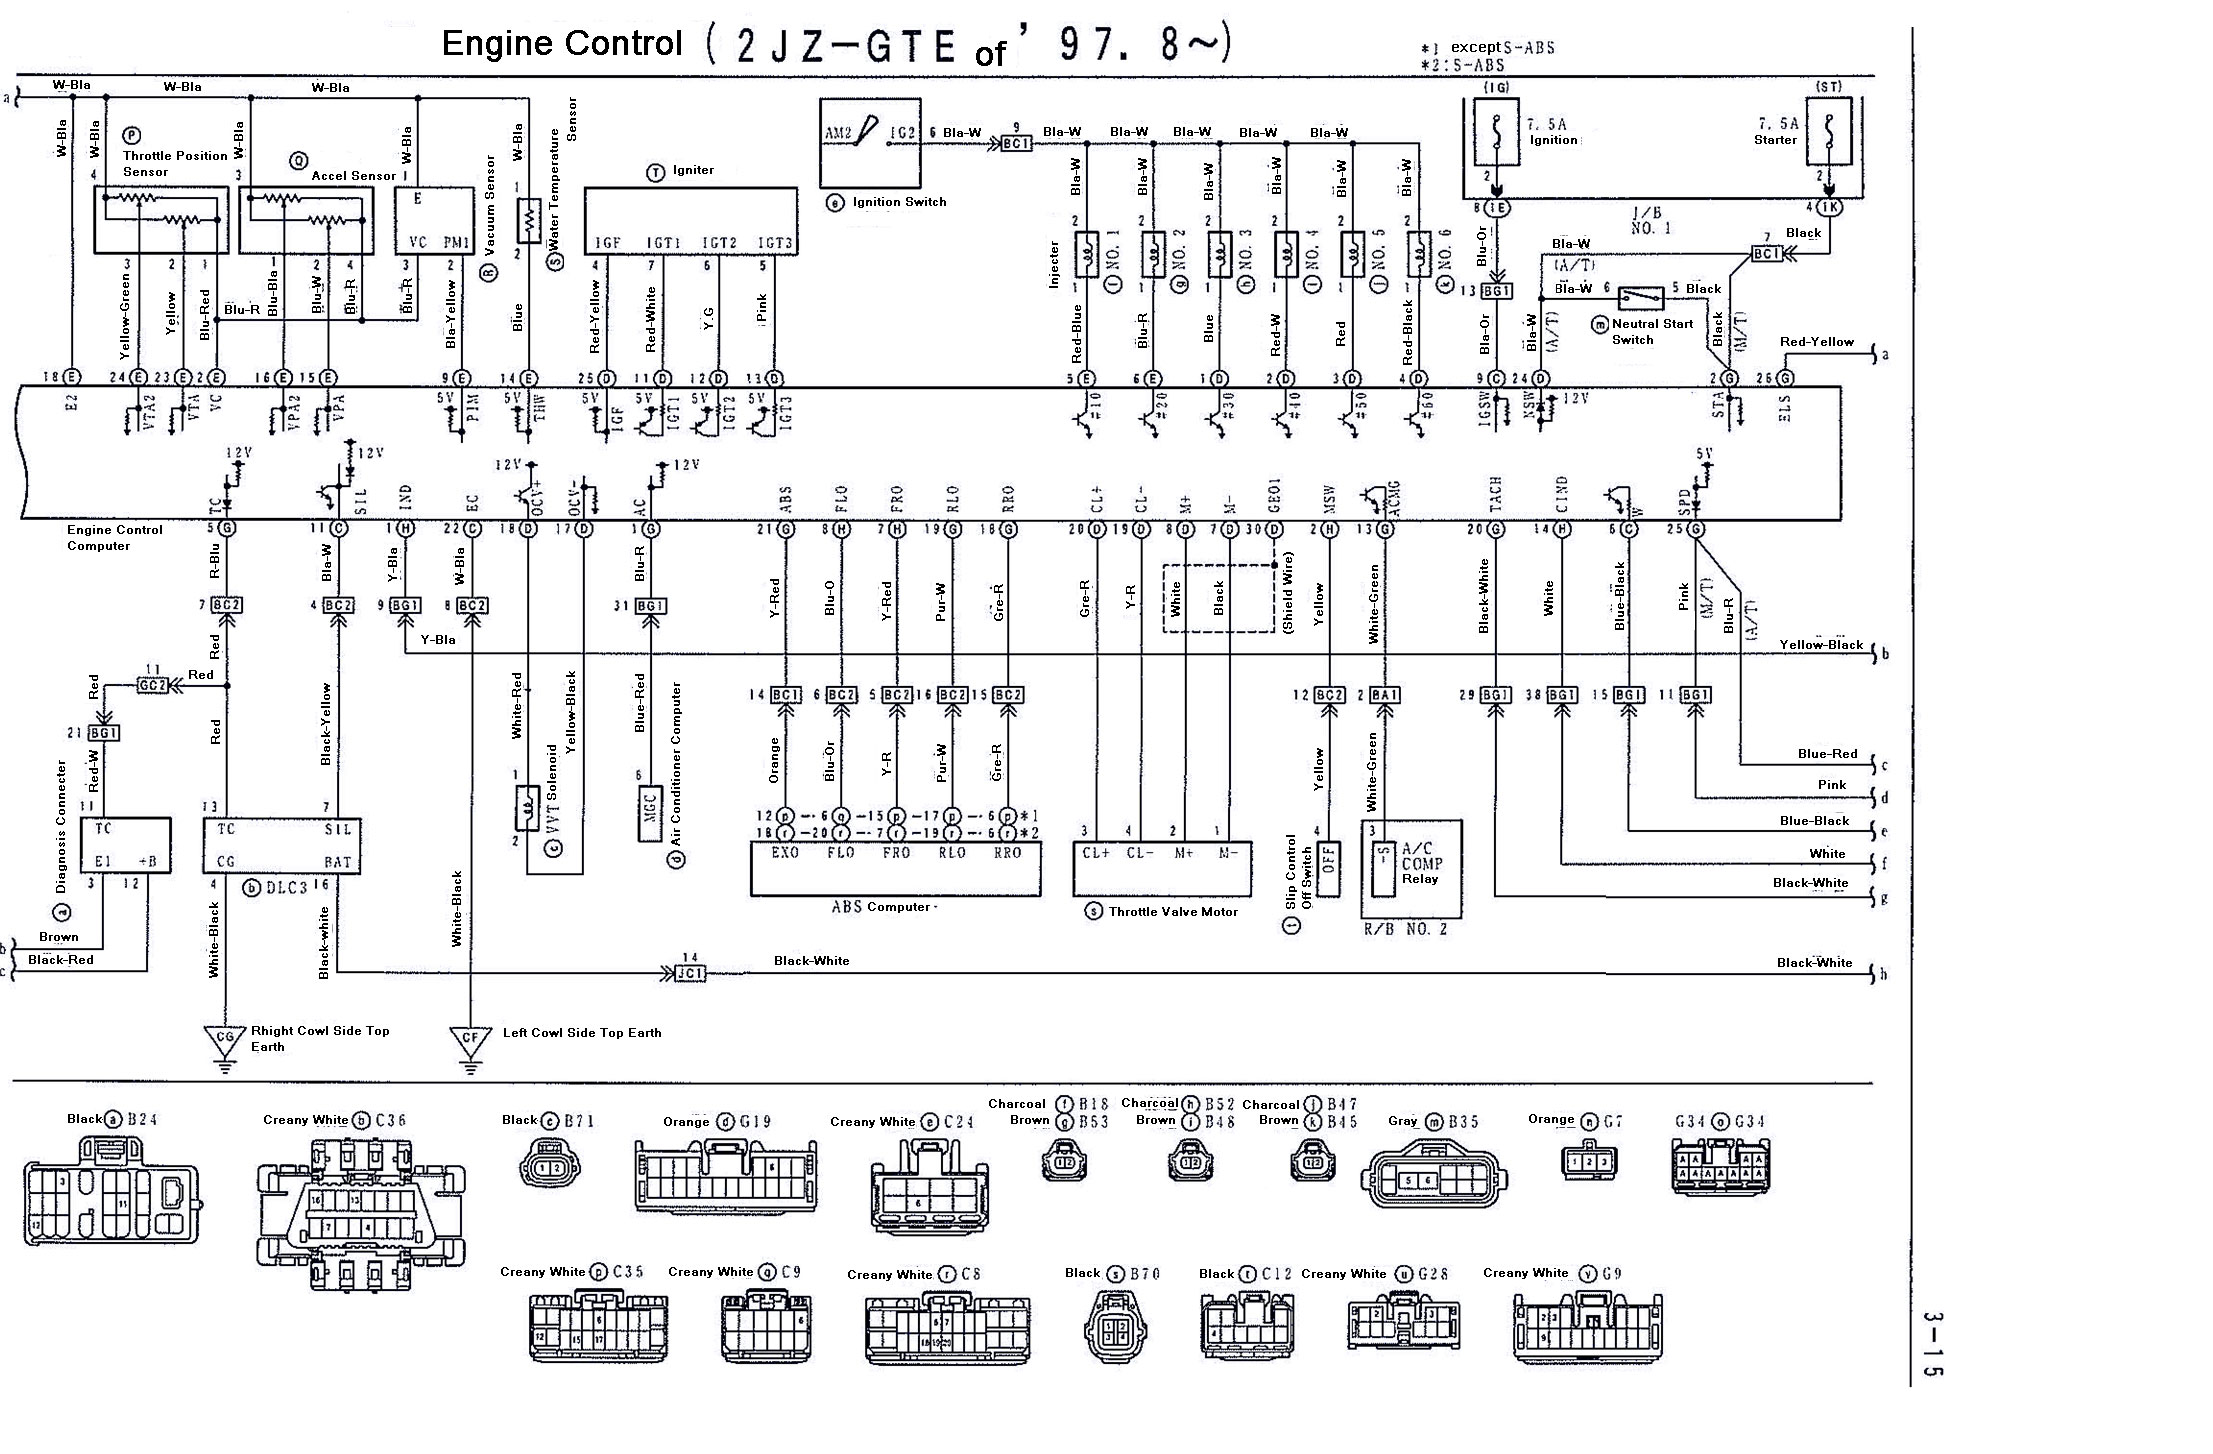 2jz Ge Wiring Diagram on wiring diagram toyota 1jz gte vvti